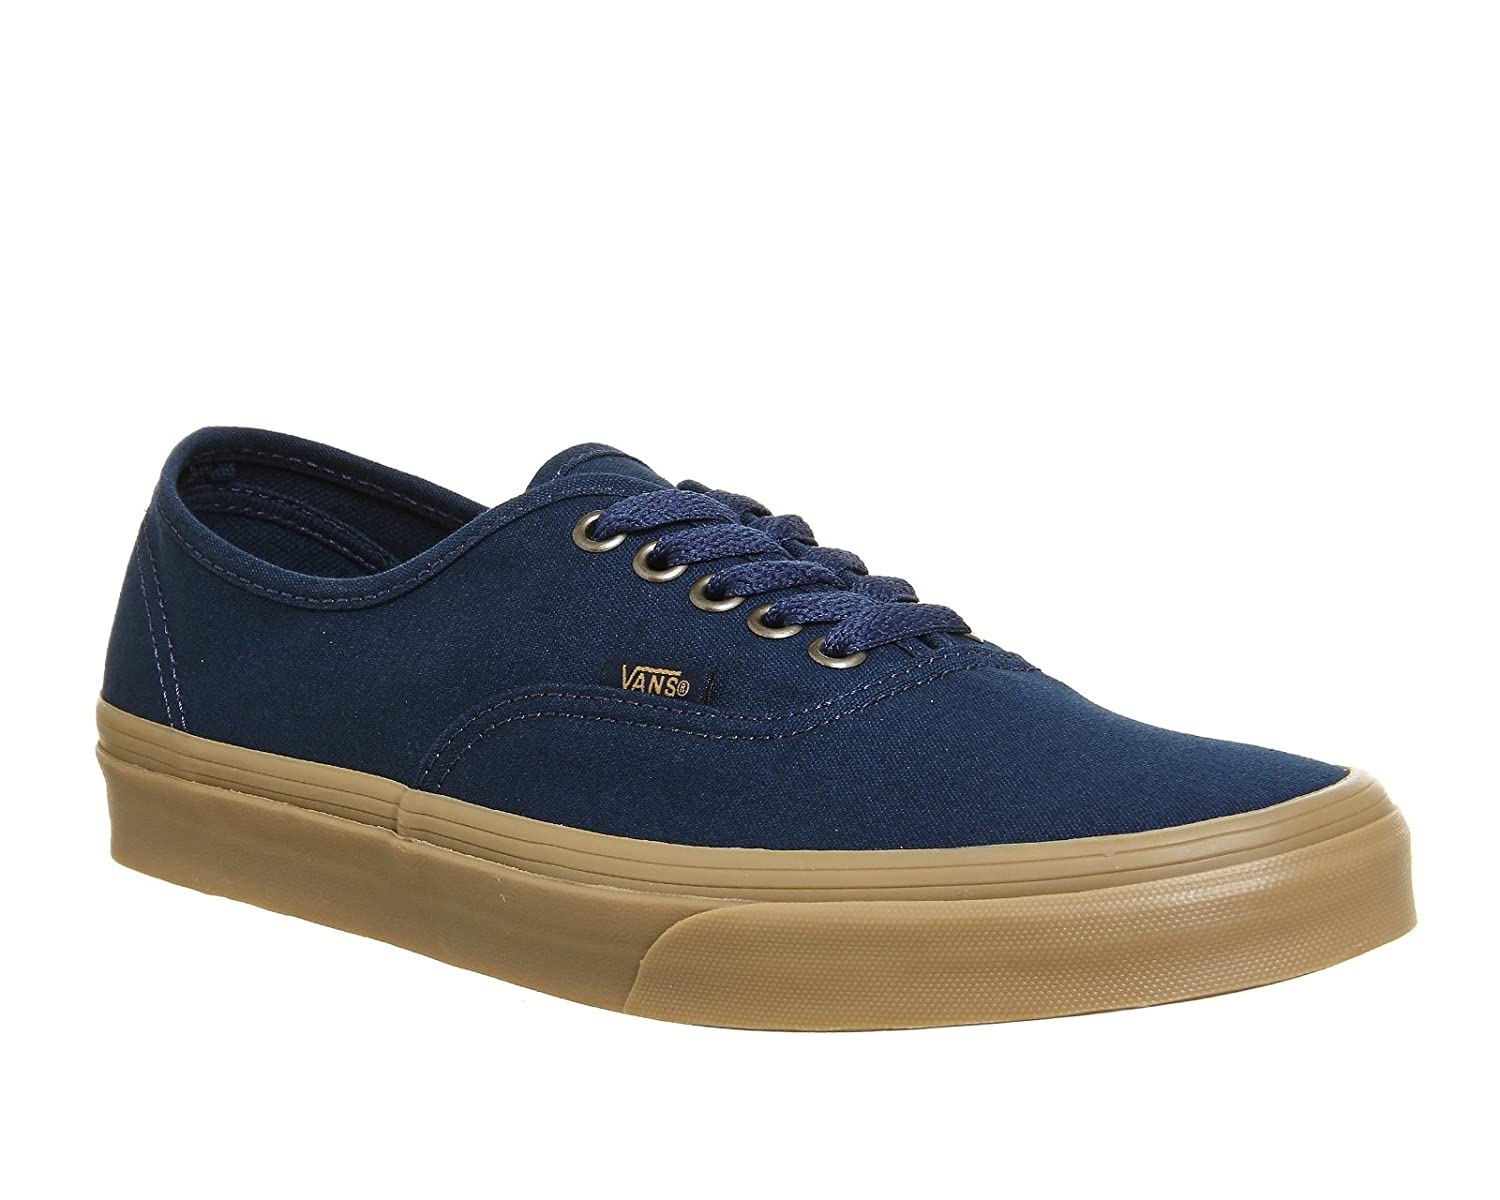 Vans VEE3NVY Unisex Authentic Shoes B01MRVDZ2O 8 D(M) US|Dress Blue / Light Gum